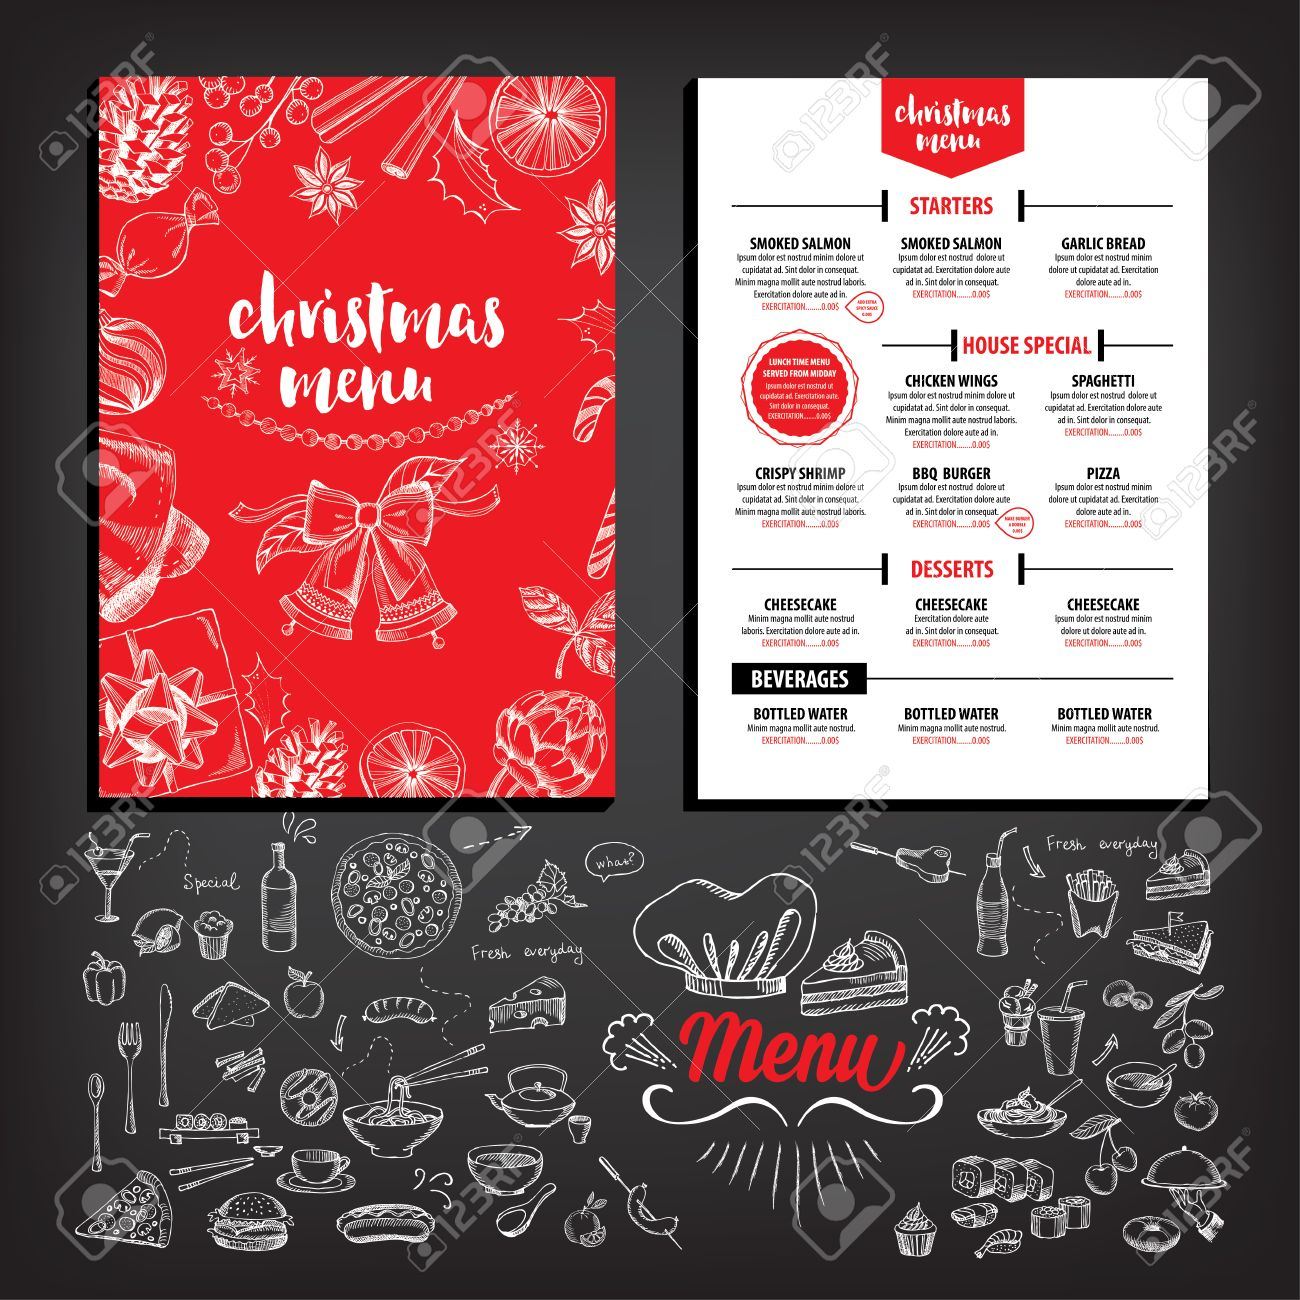 2697 Christmas Dinner Party Vector Illustration And Royalty – Free Christmas Dinner Menu Template